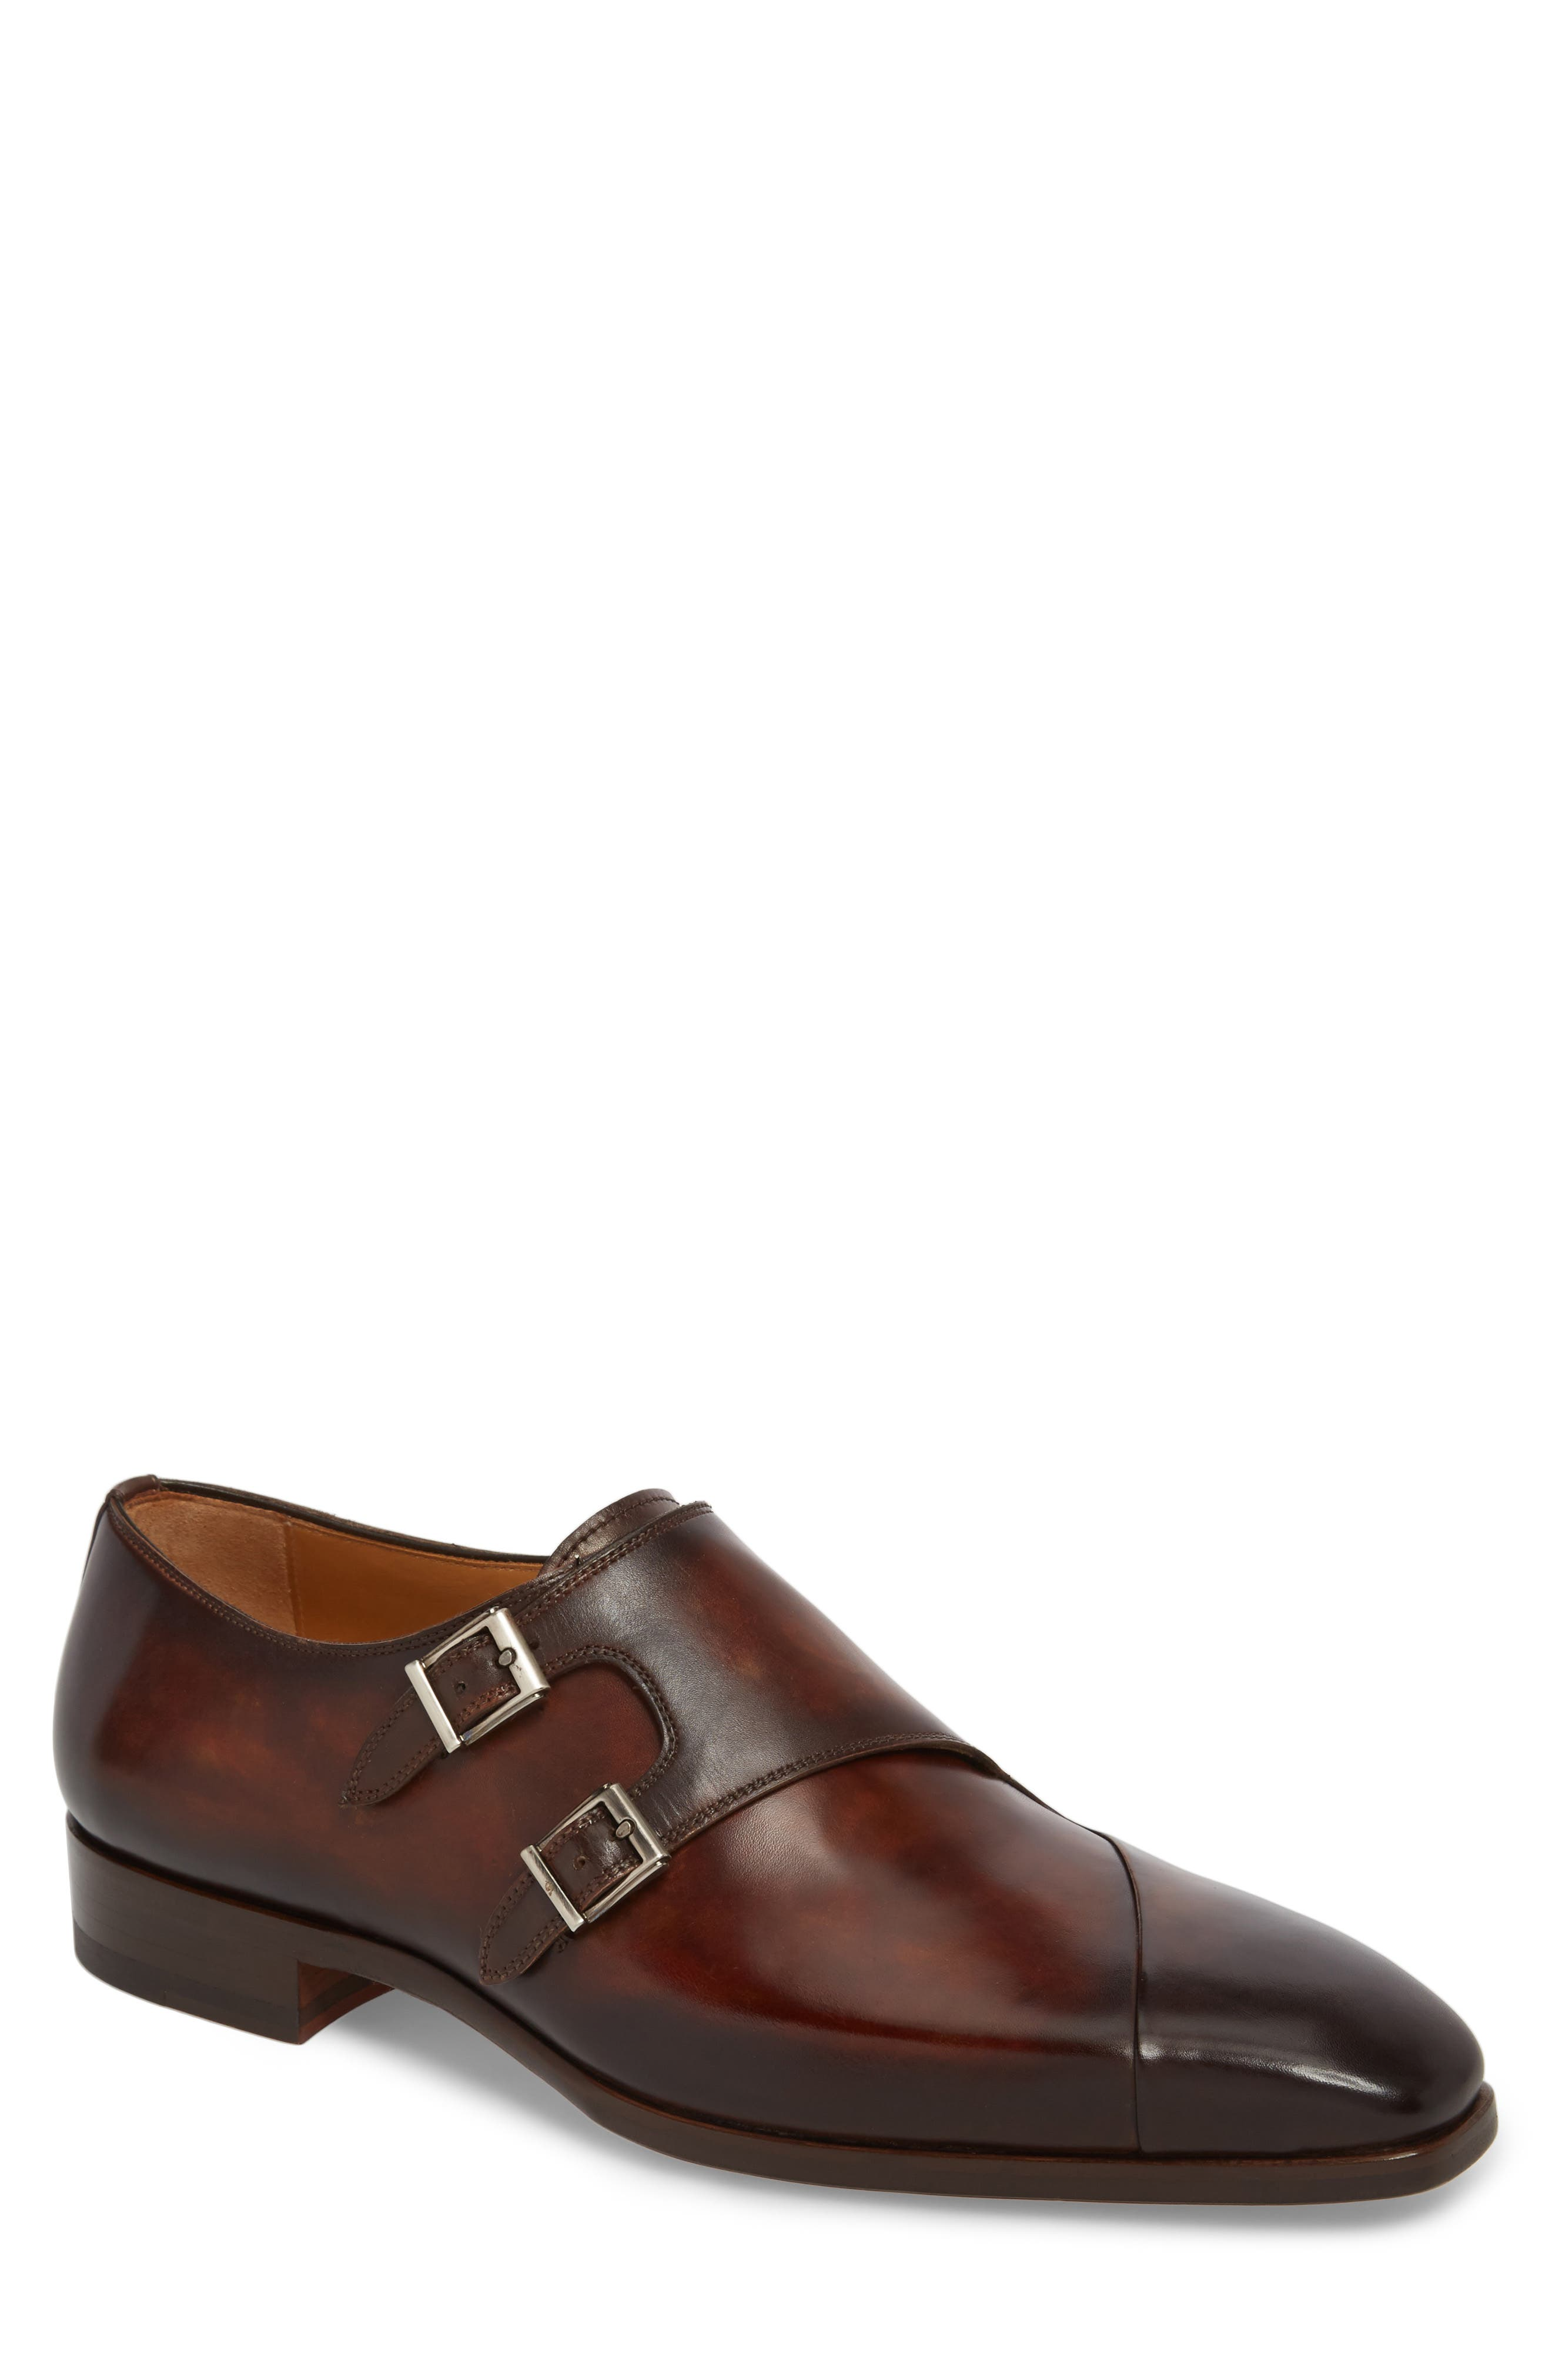 Hafiz Double Strap Monk Shoe,                         Main,                         color, TABACO LEATHER